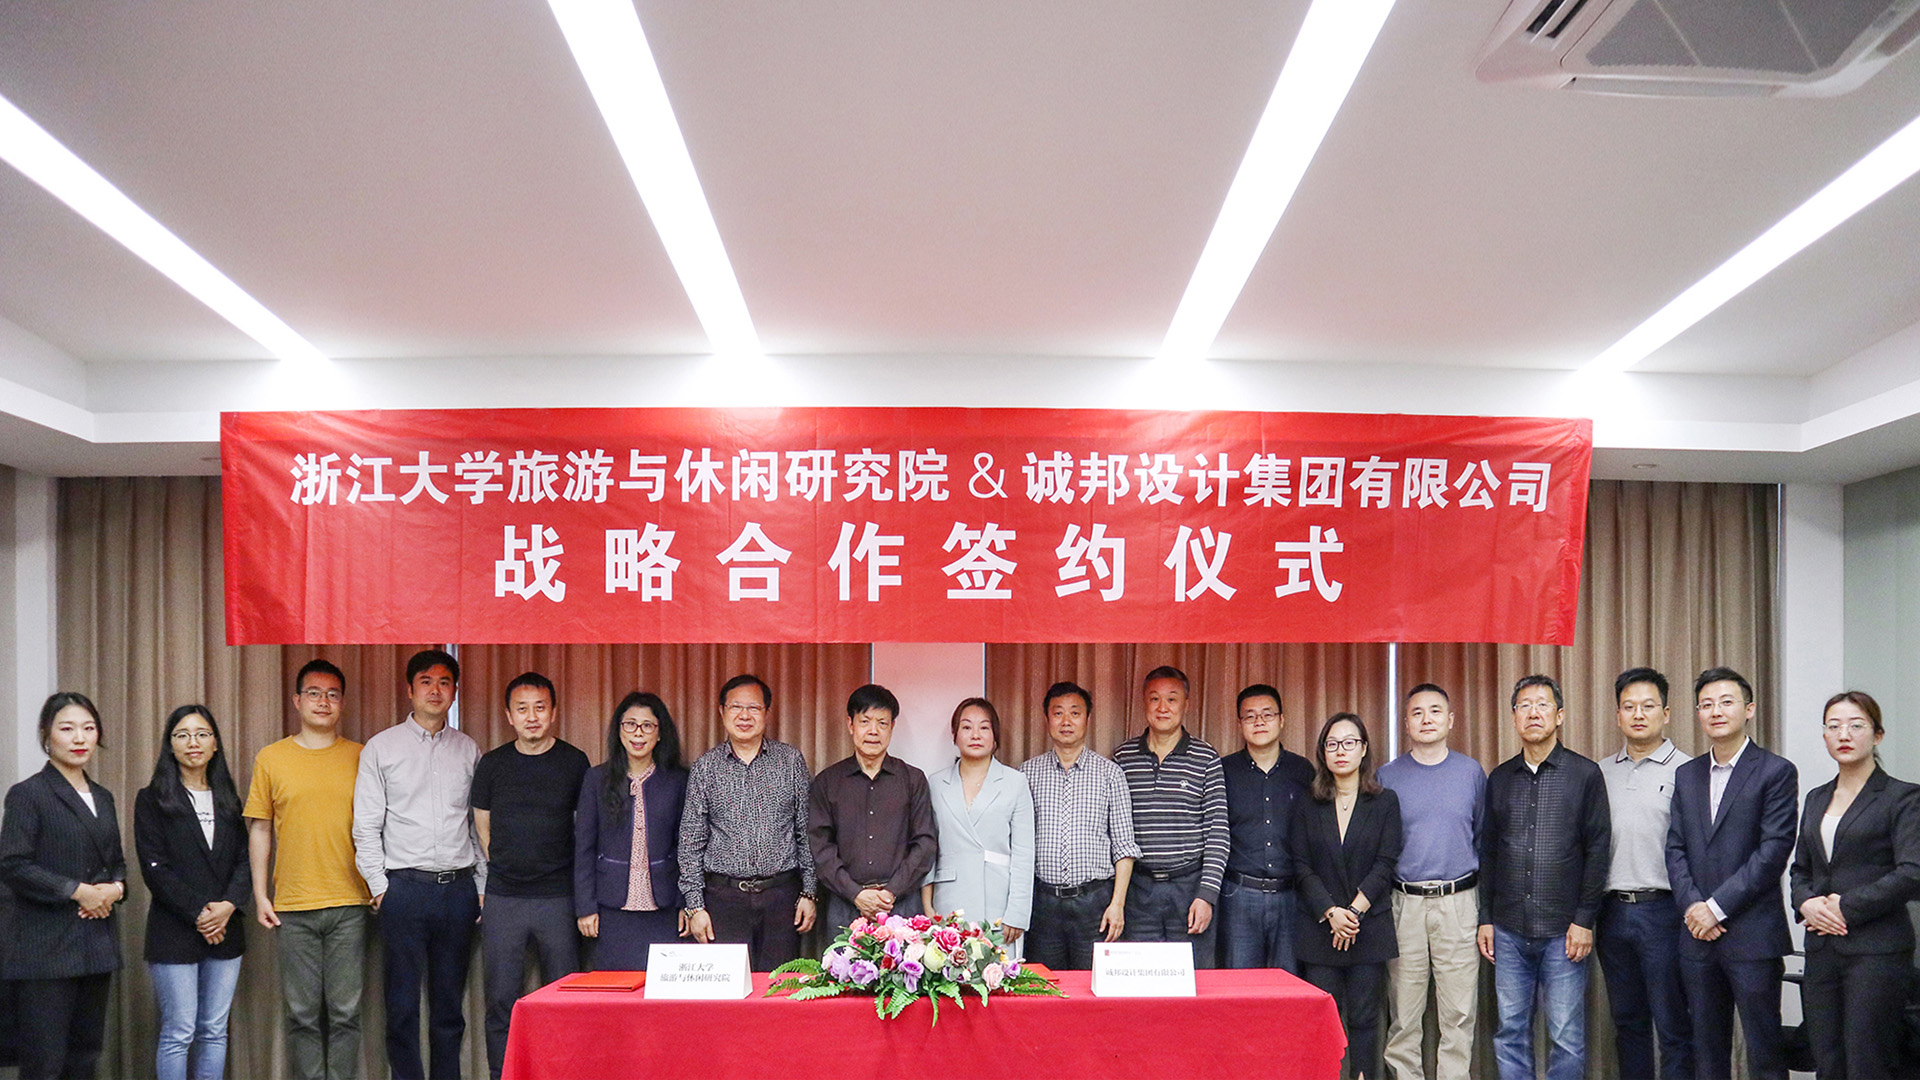 Chengbang Design Group & Zhejiang University Tourism and Leisure Research Institute announced a strategic cooperation